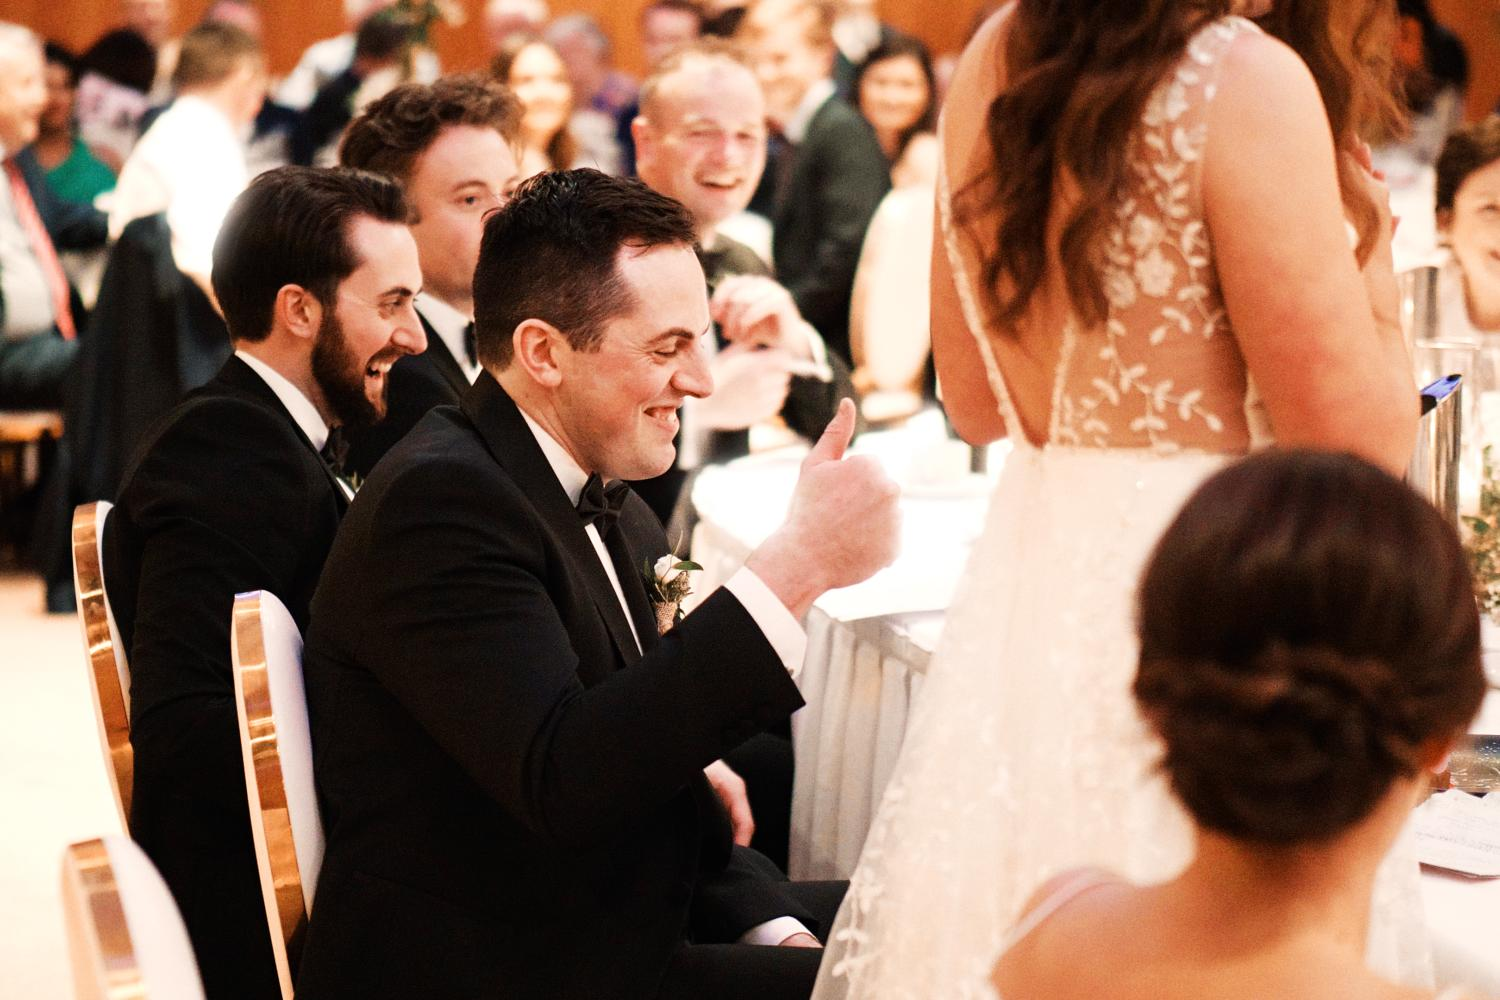 A groom raises his thumb in an approving manner during the bride's speech